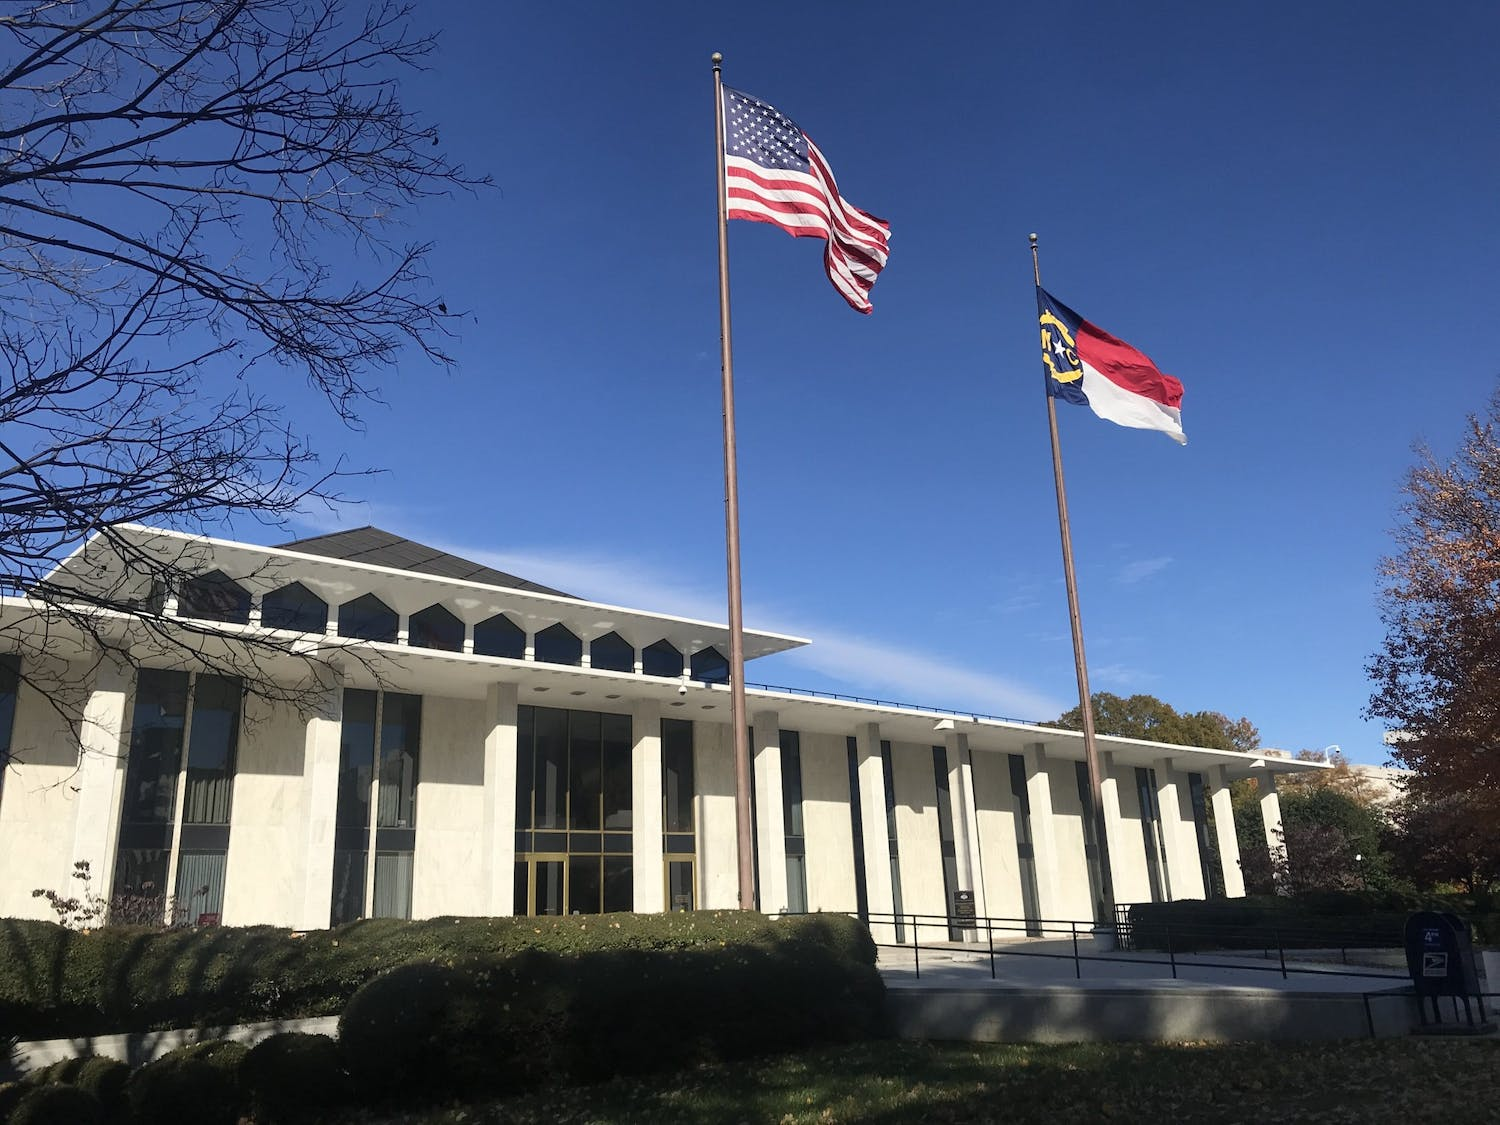 The North Carolina General Assembly is located in Downtown Raleigh and houses the state Senate and House of Representatives.